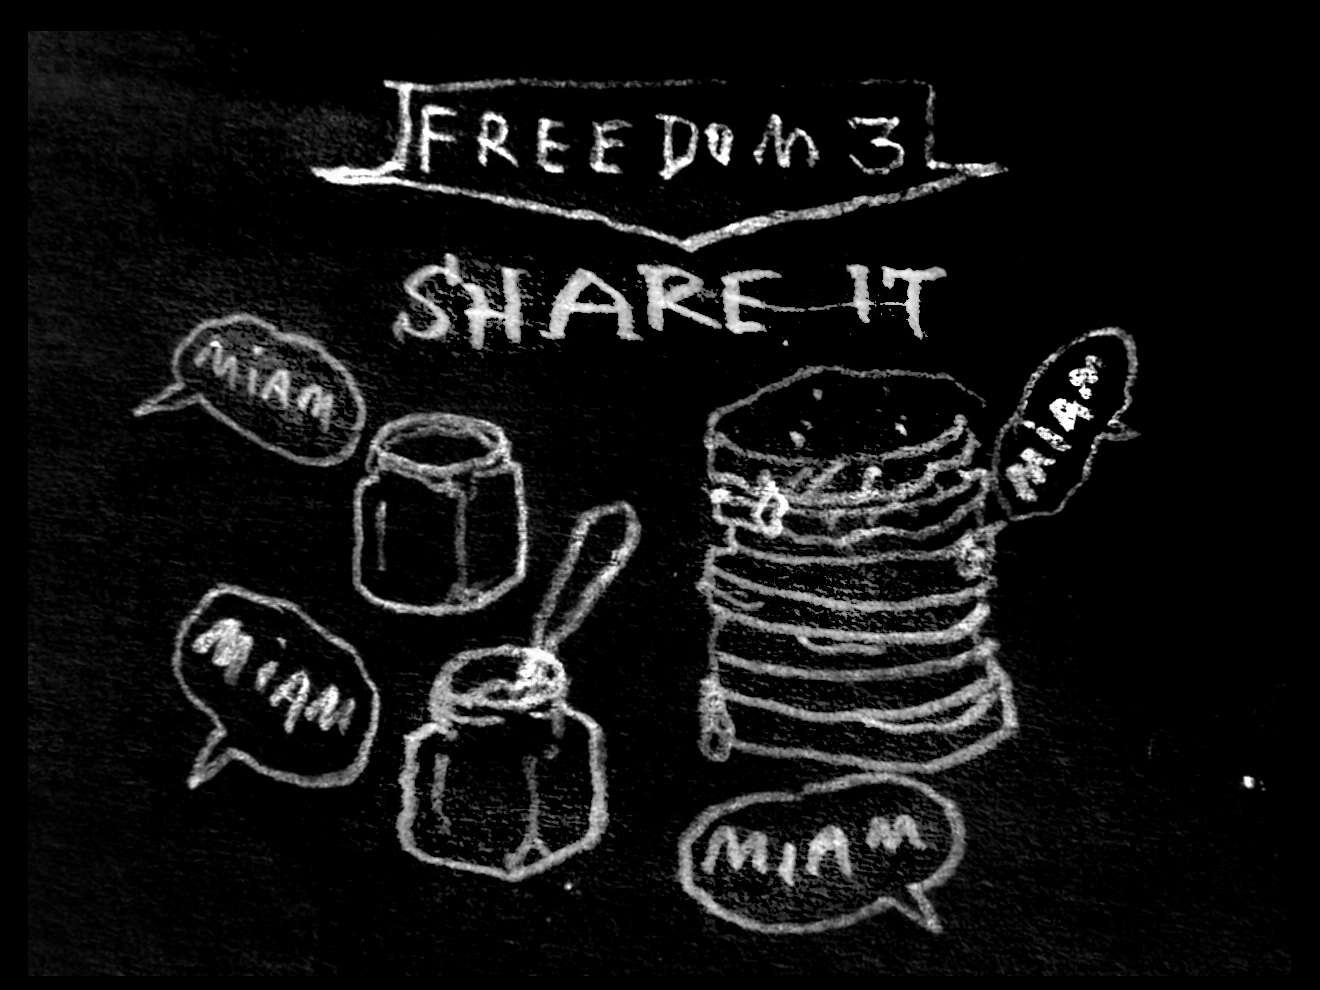 Freedom 3 - share it